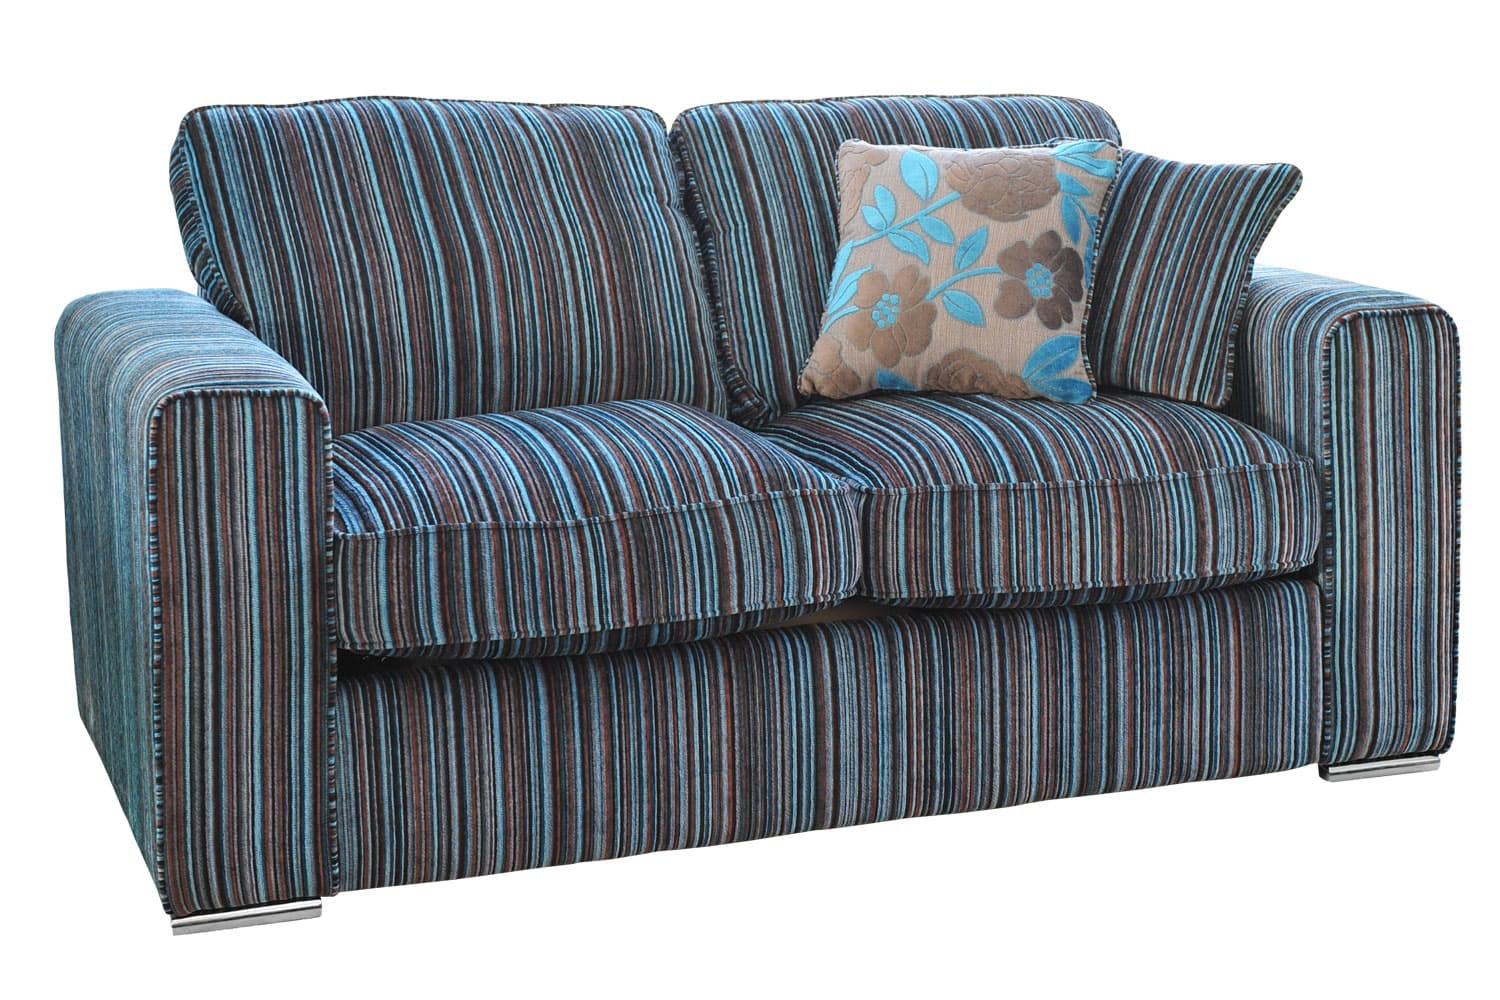 Spencer 2 Seater Sofa Bed Harvey Norman